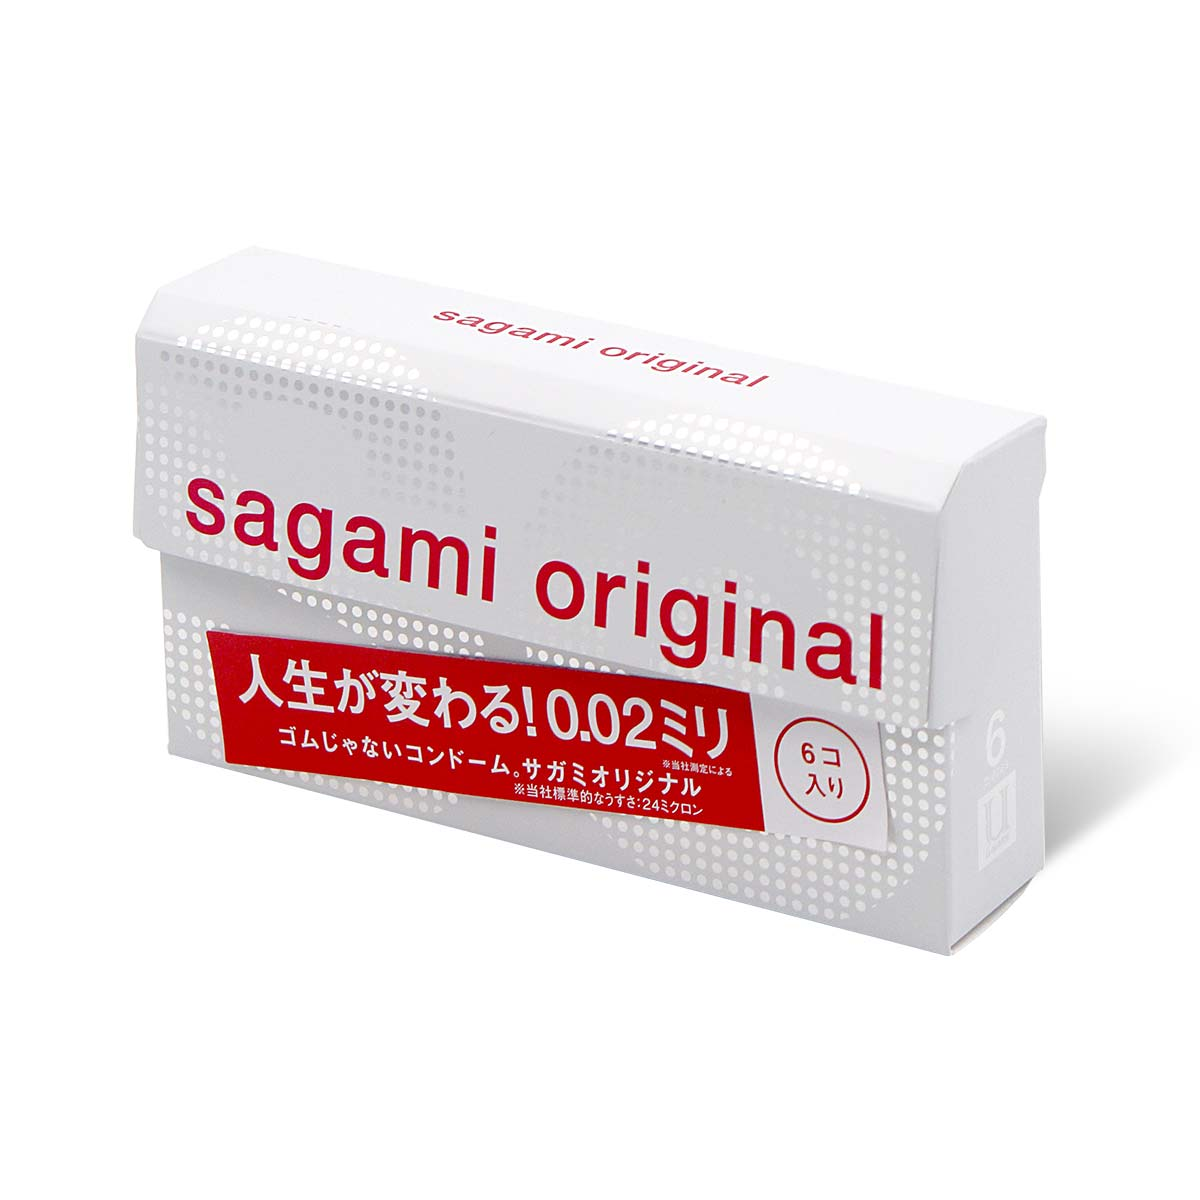 Sagami Original 0.02 (2nd generation) 6's Pack PU Condom